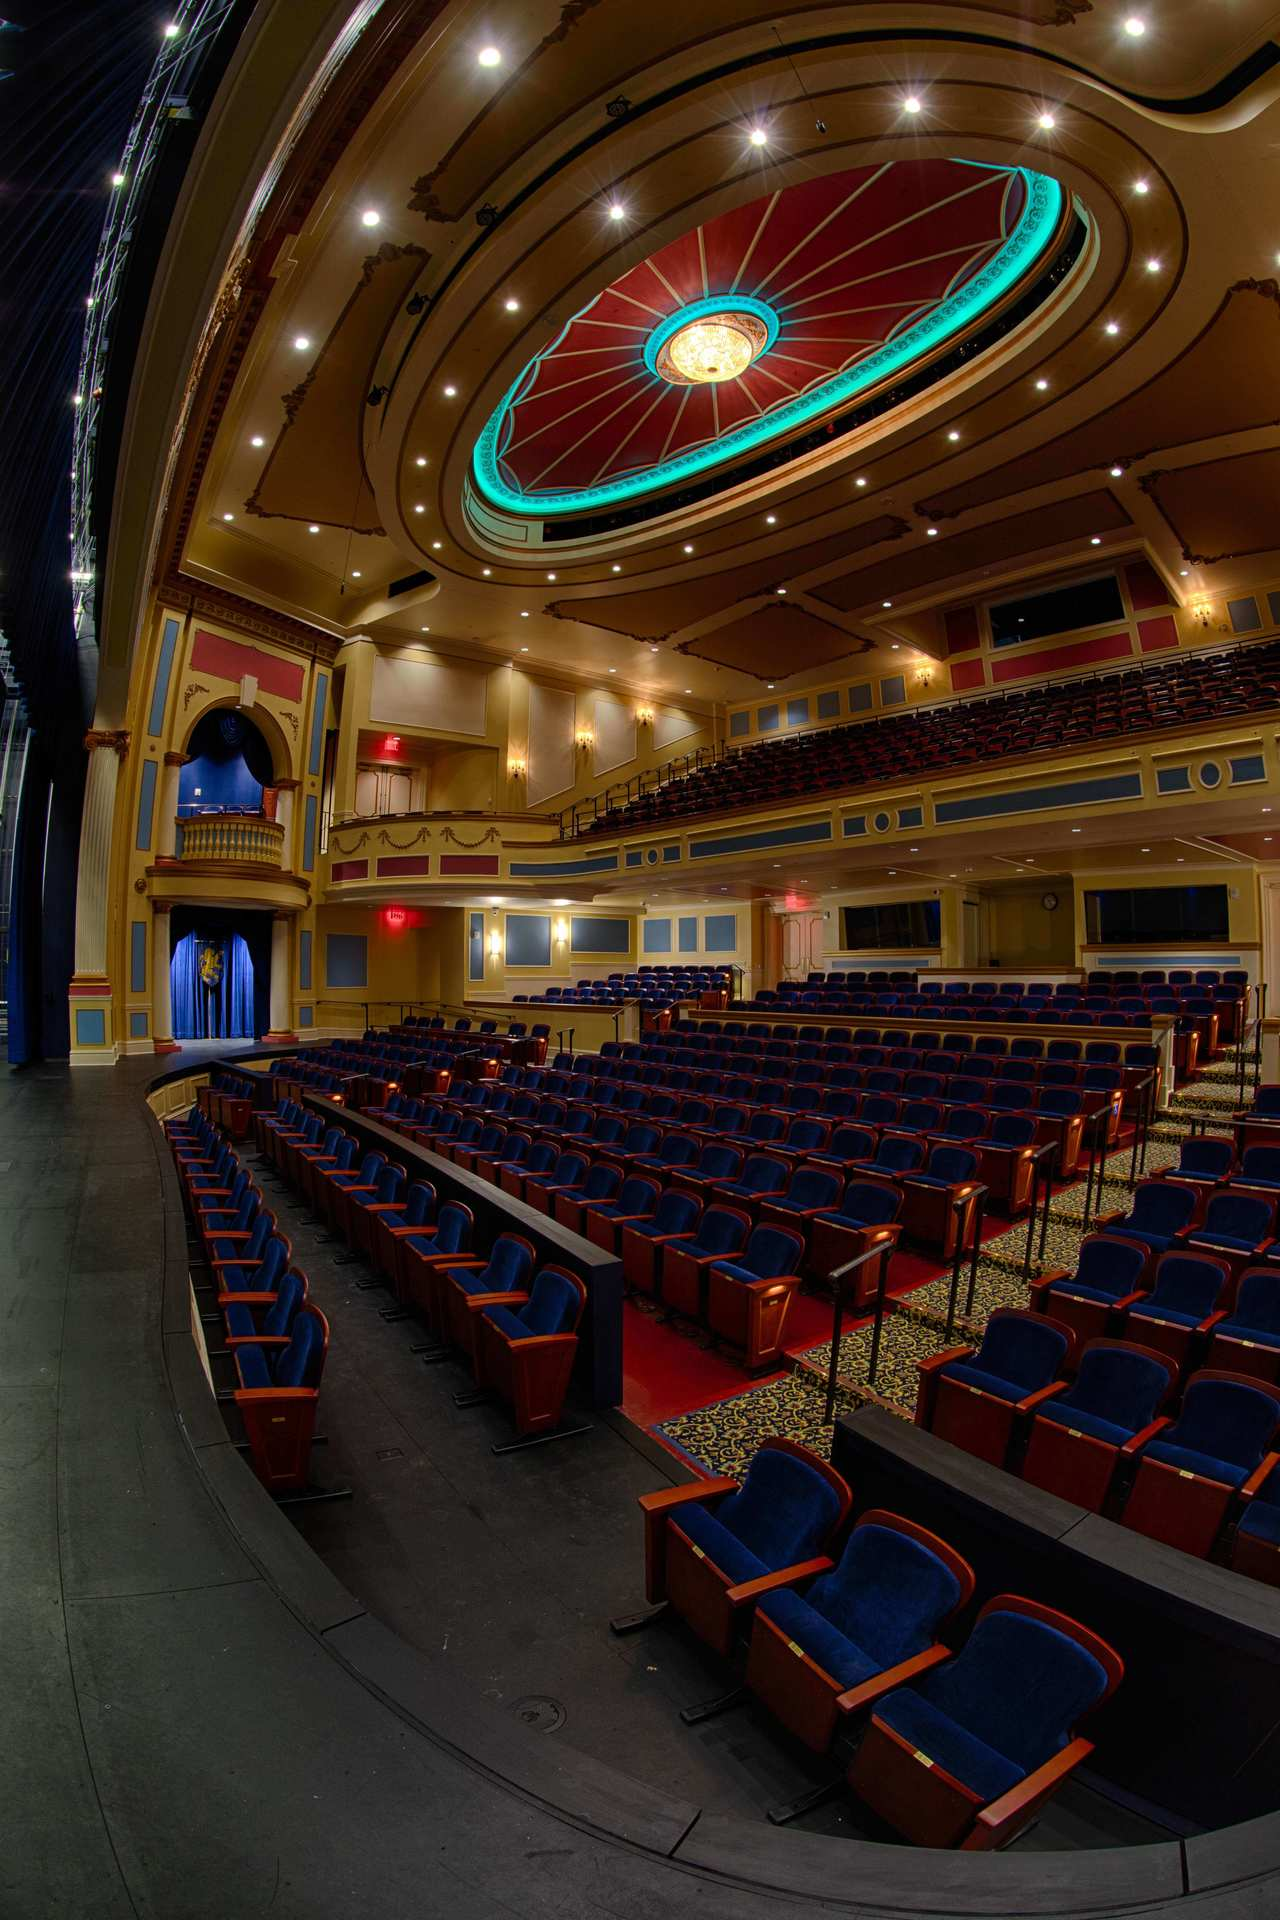 The unique RGB LED ceiling lighting at Providence Academy: Performing Arts Center in Plymouth, Minnesota, by Stahl.